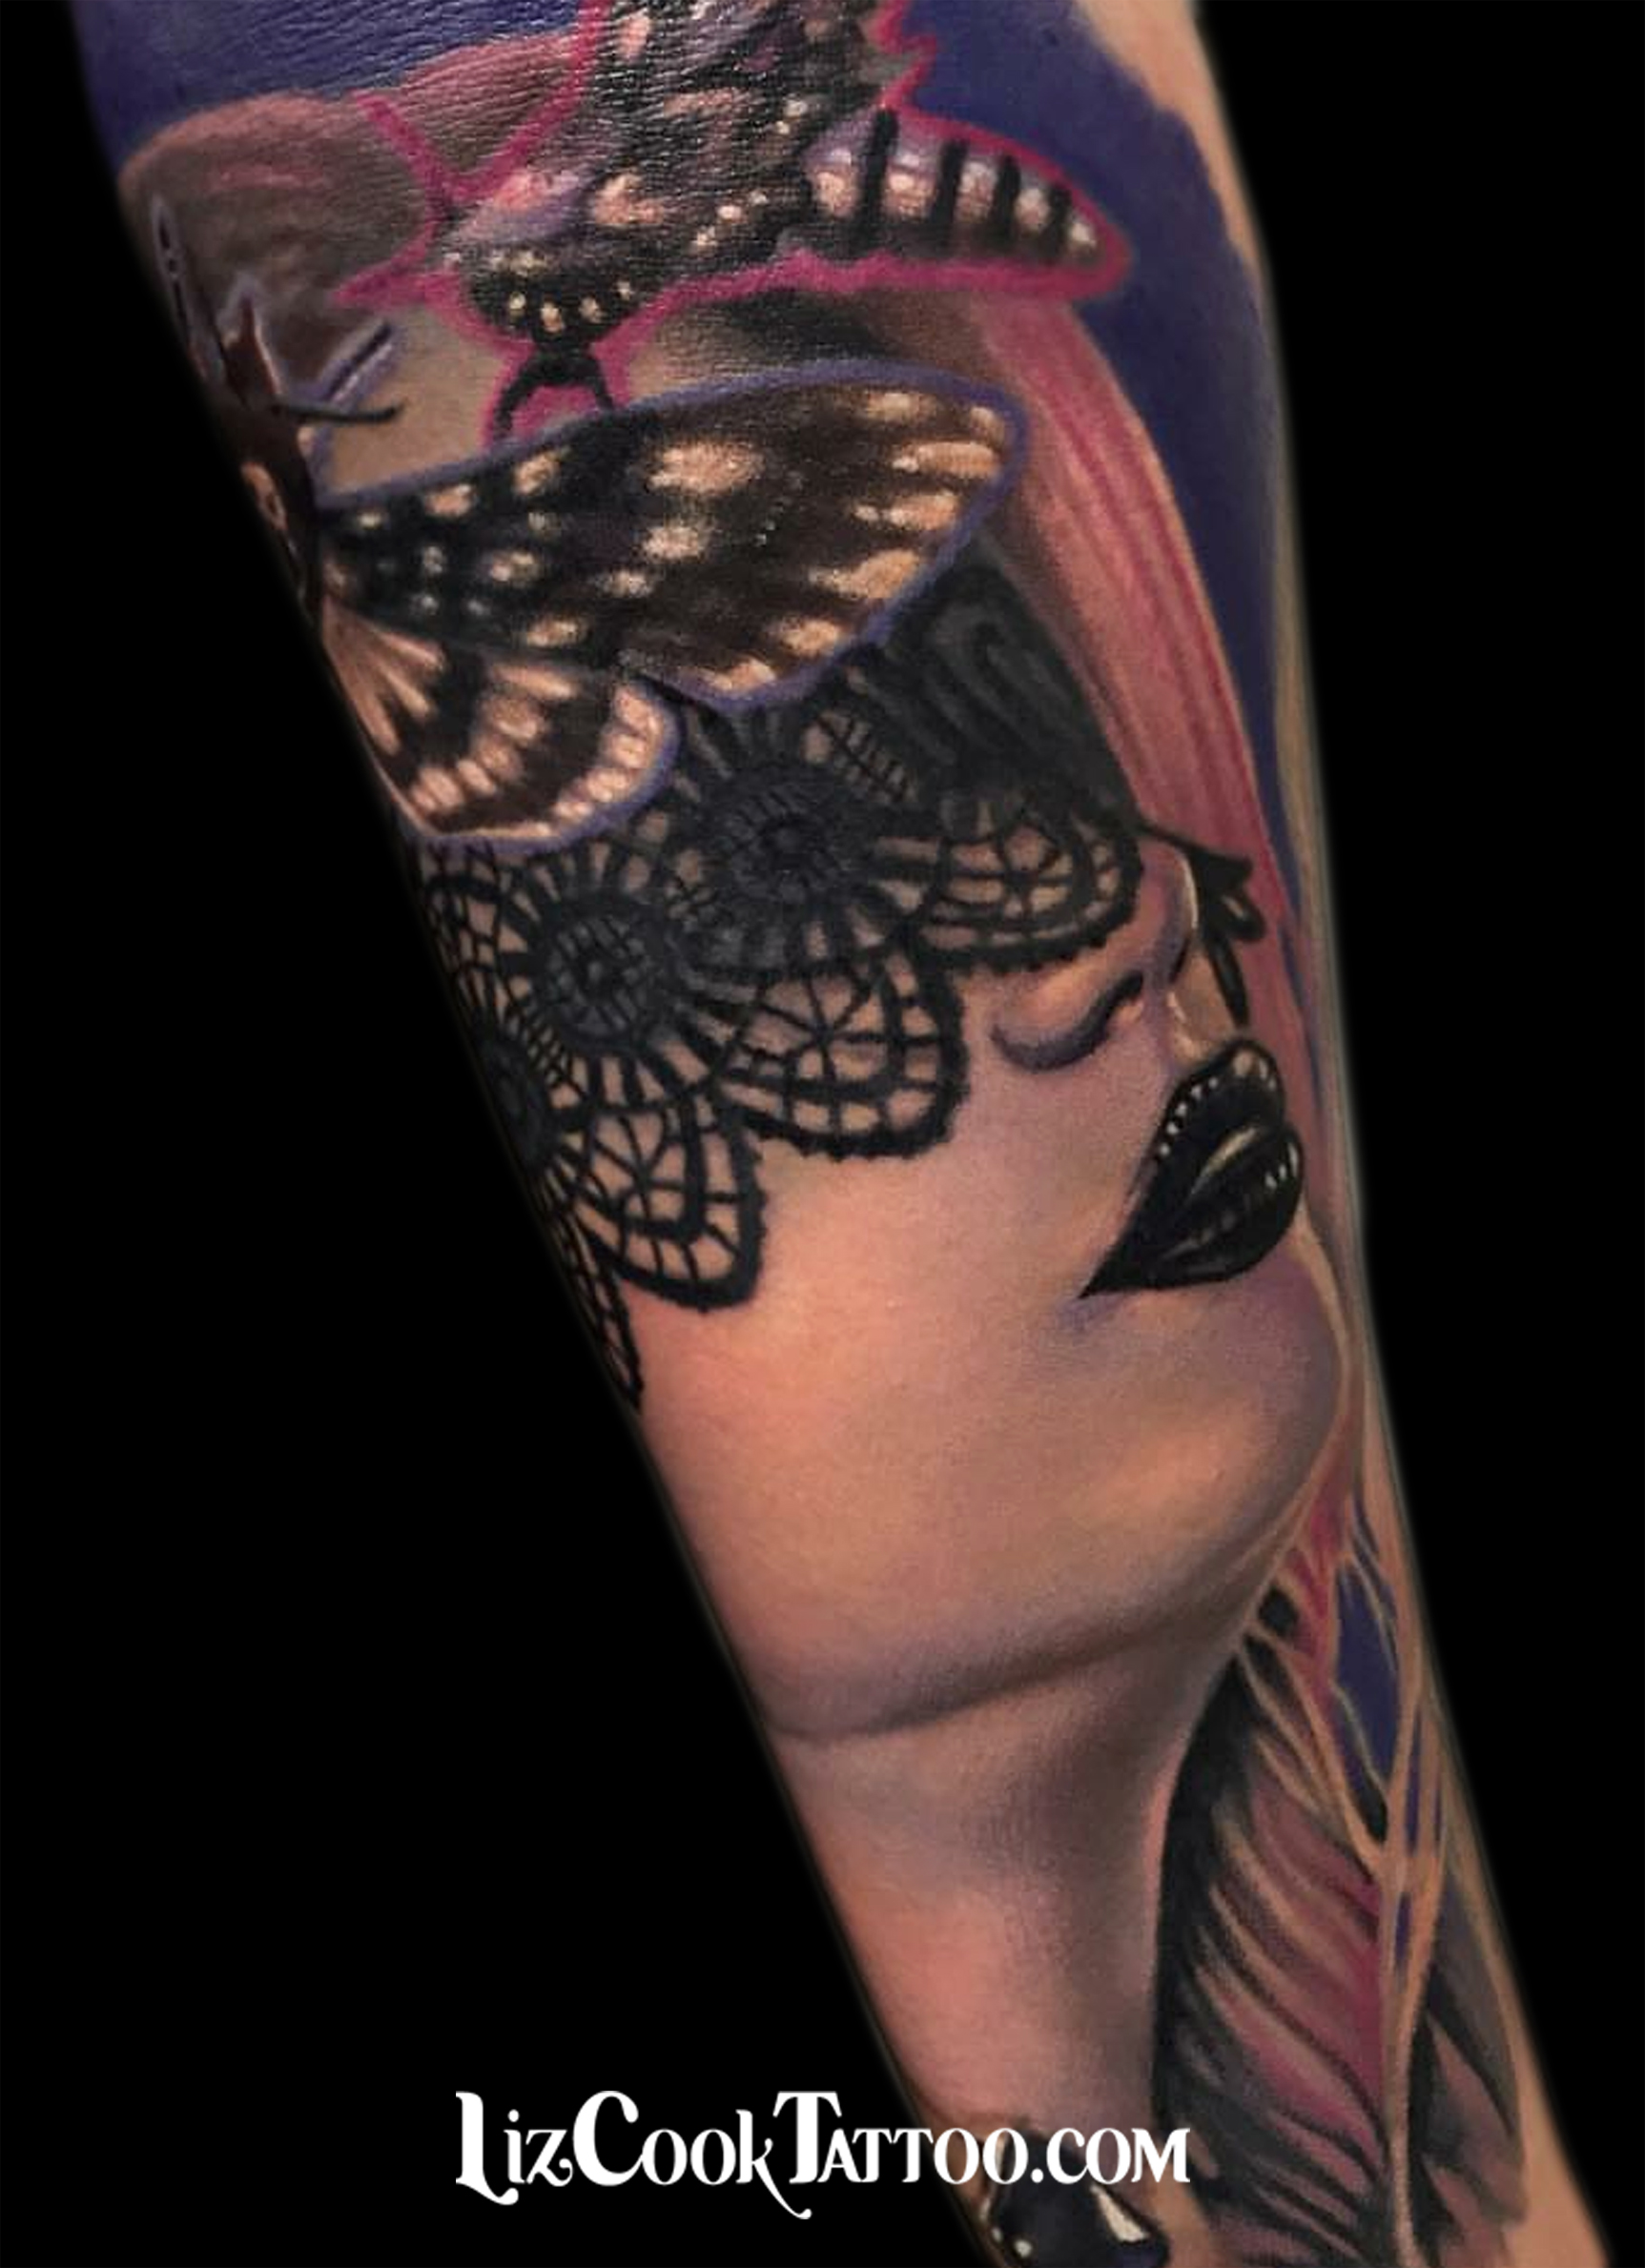 Liz Cook Tattoo Liz Girl Moth Lace Color Portrait Illustrative Realism Inner Forearm